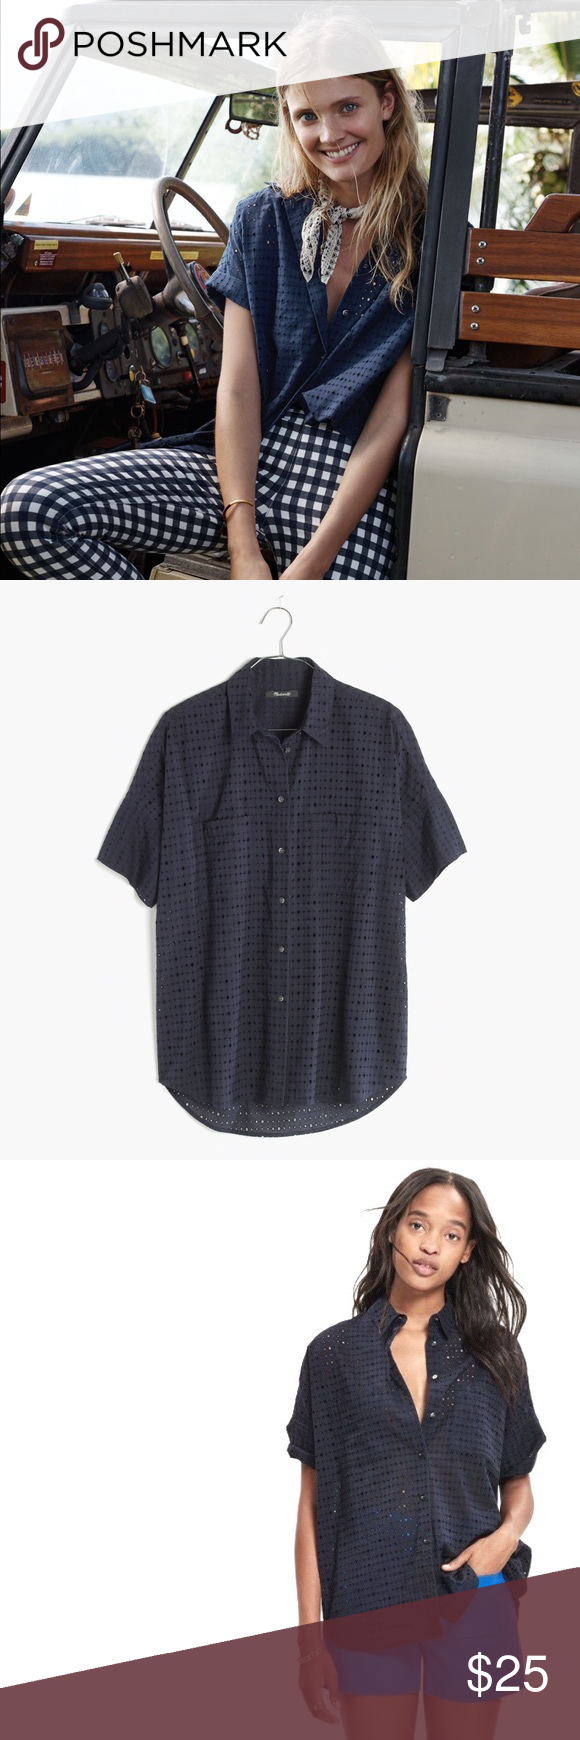 42a78c6d Madewell Eyelet Courier Shirt This popular style is SOLD OUT ON MADEWELL.COM  In excellent